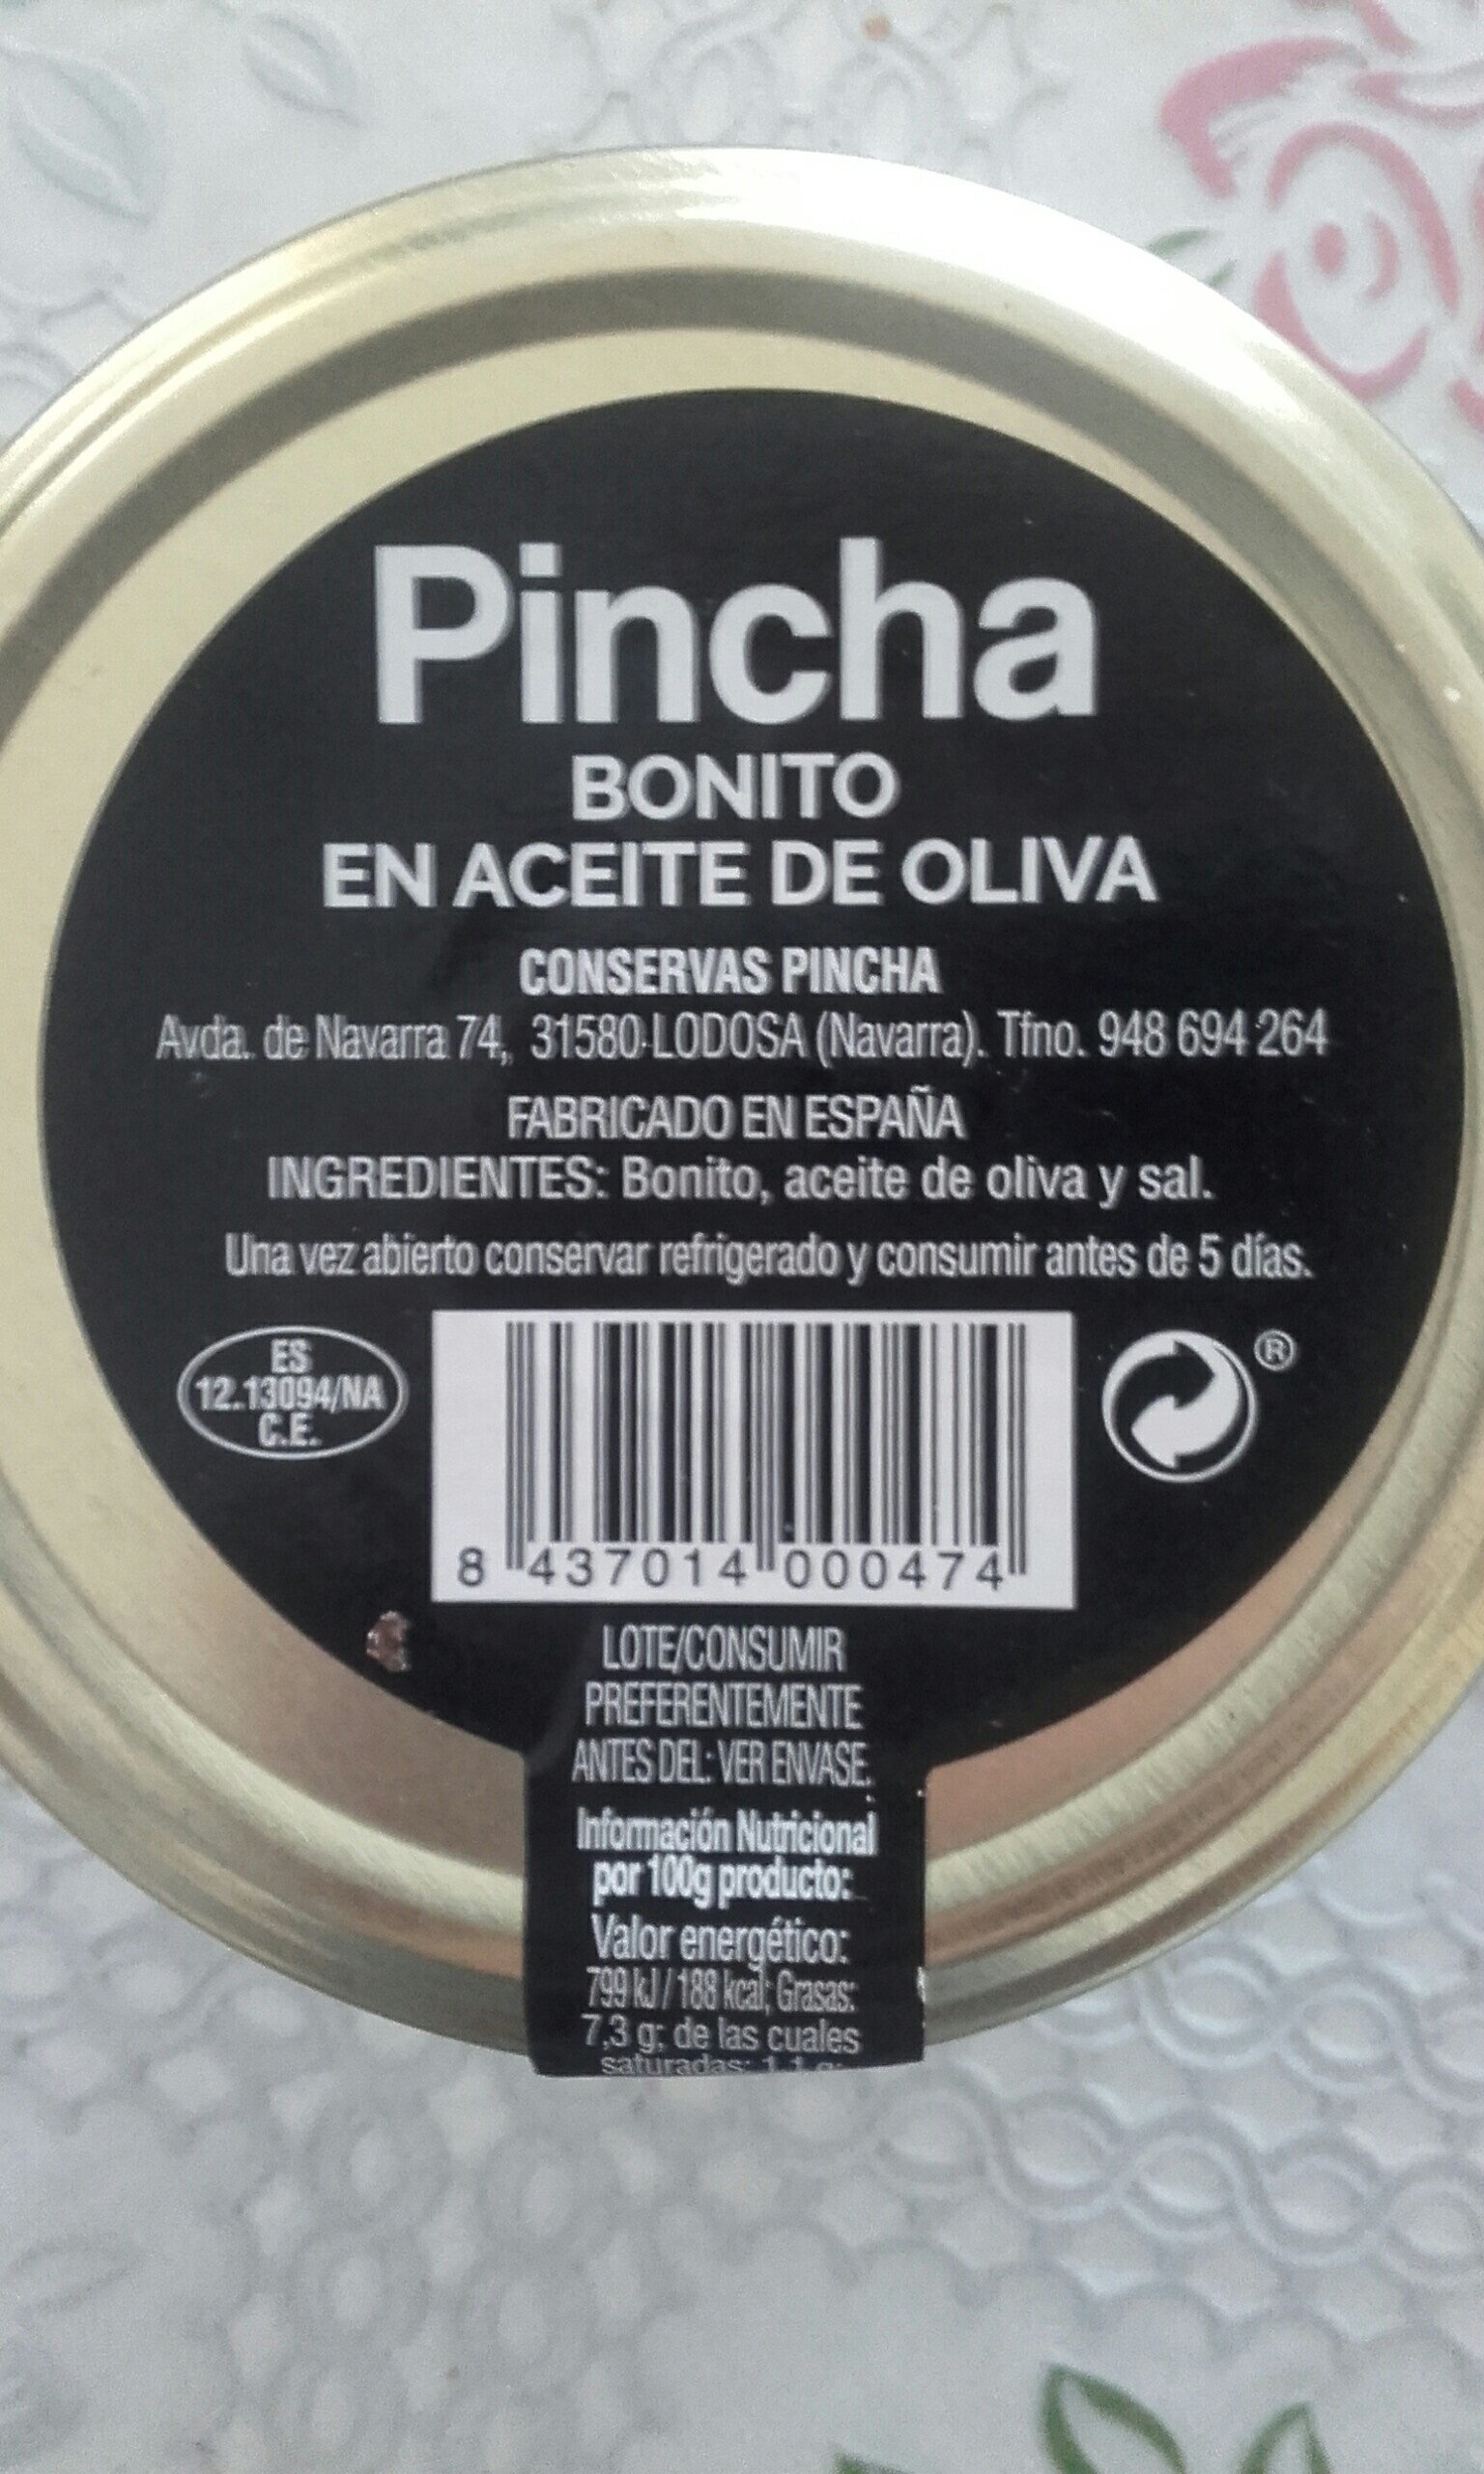 Bonito en aceite de oliva - Ingredients